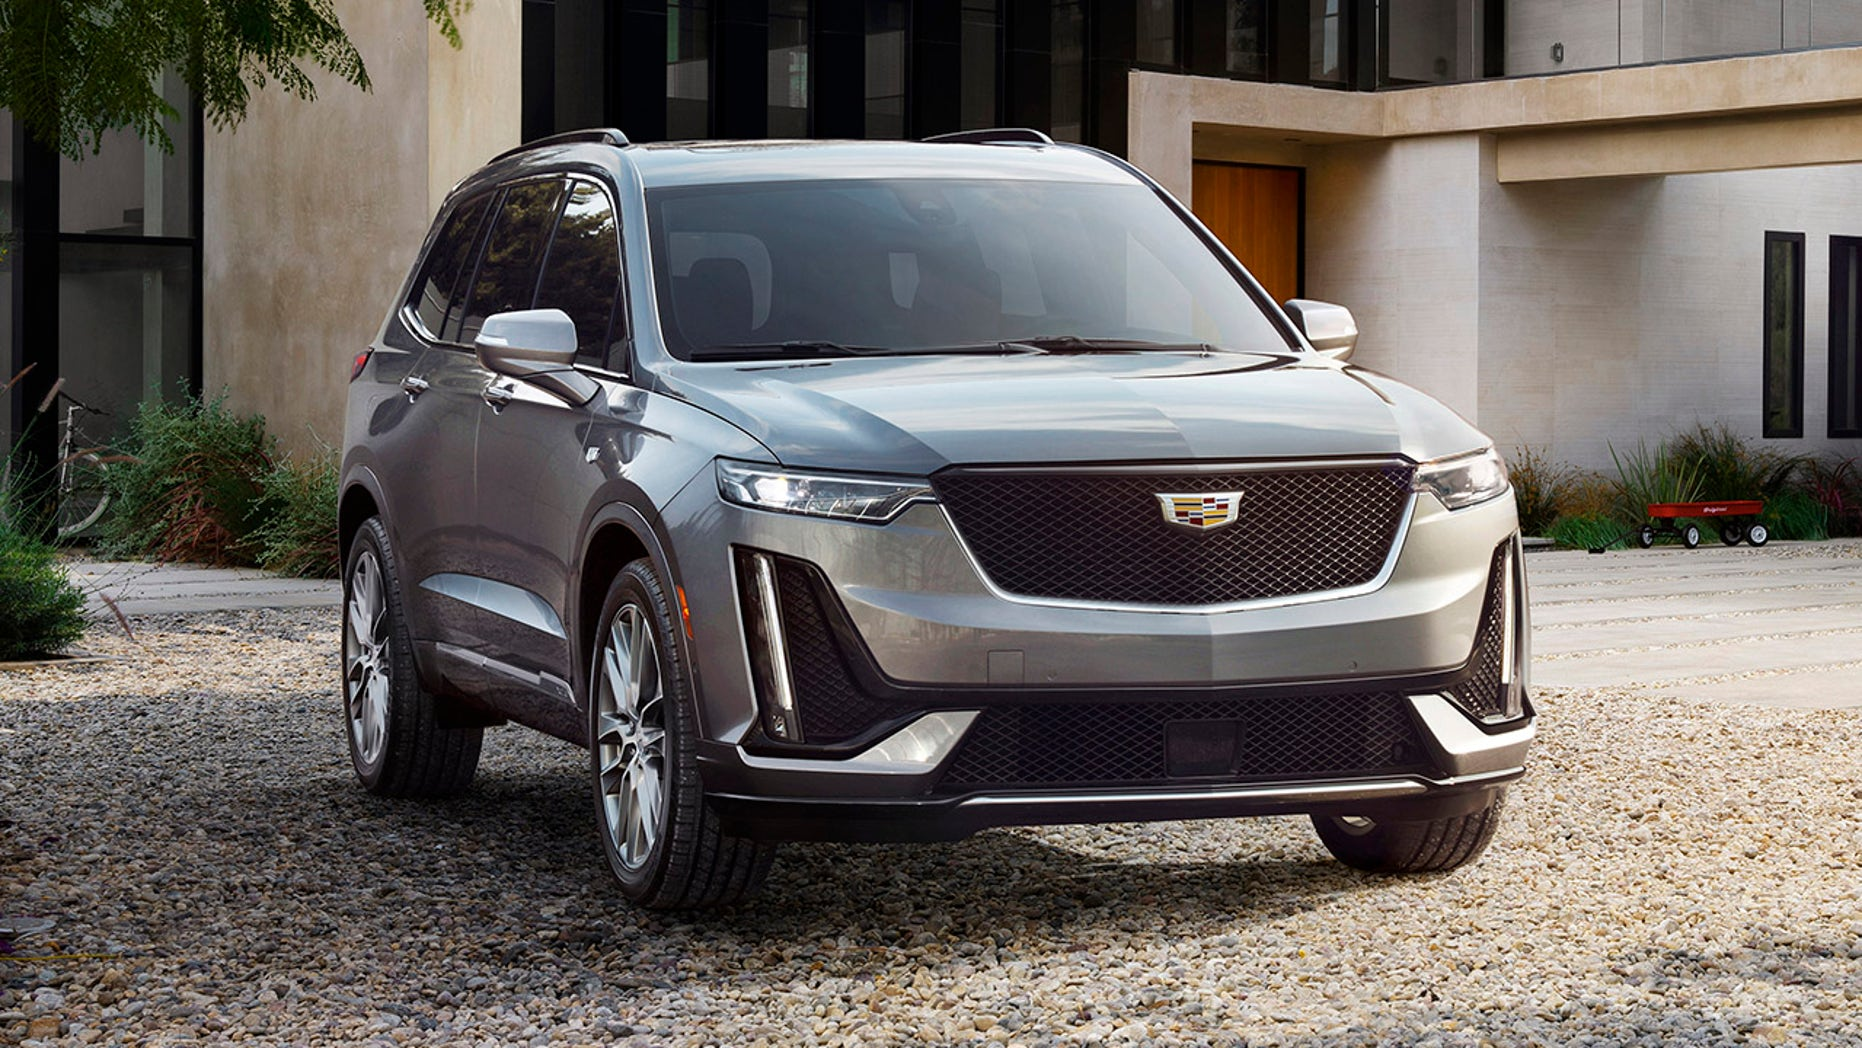 Cadillac's first electric SUV revealed